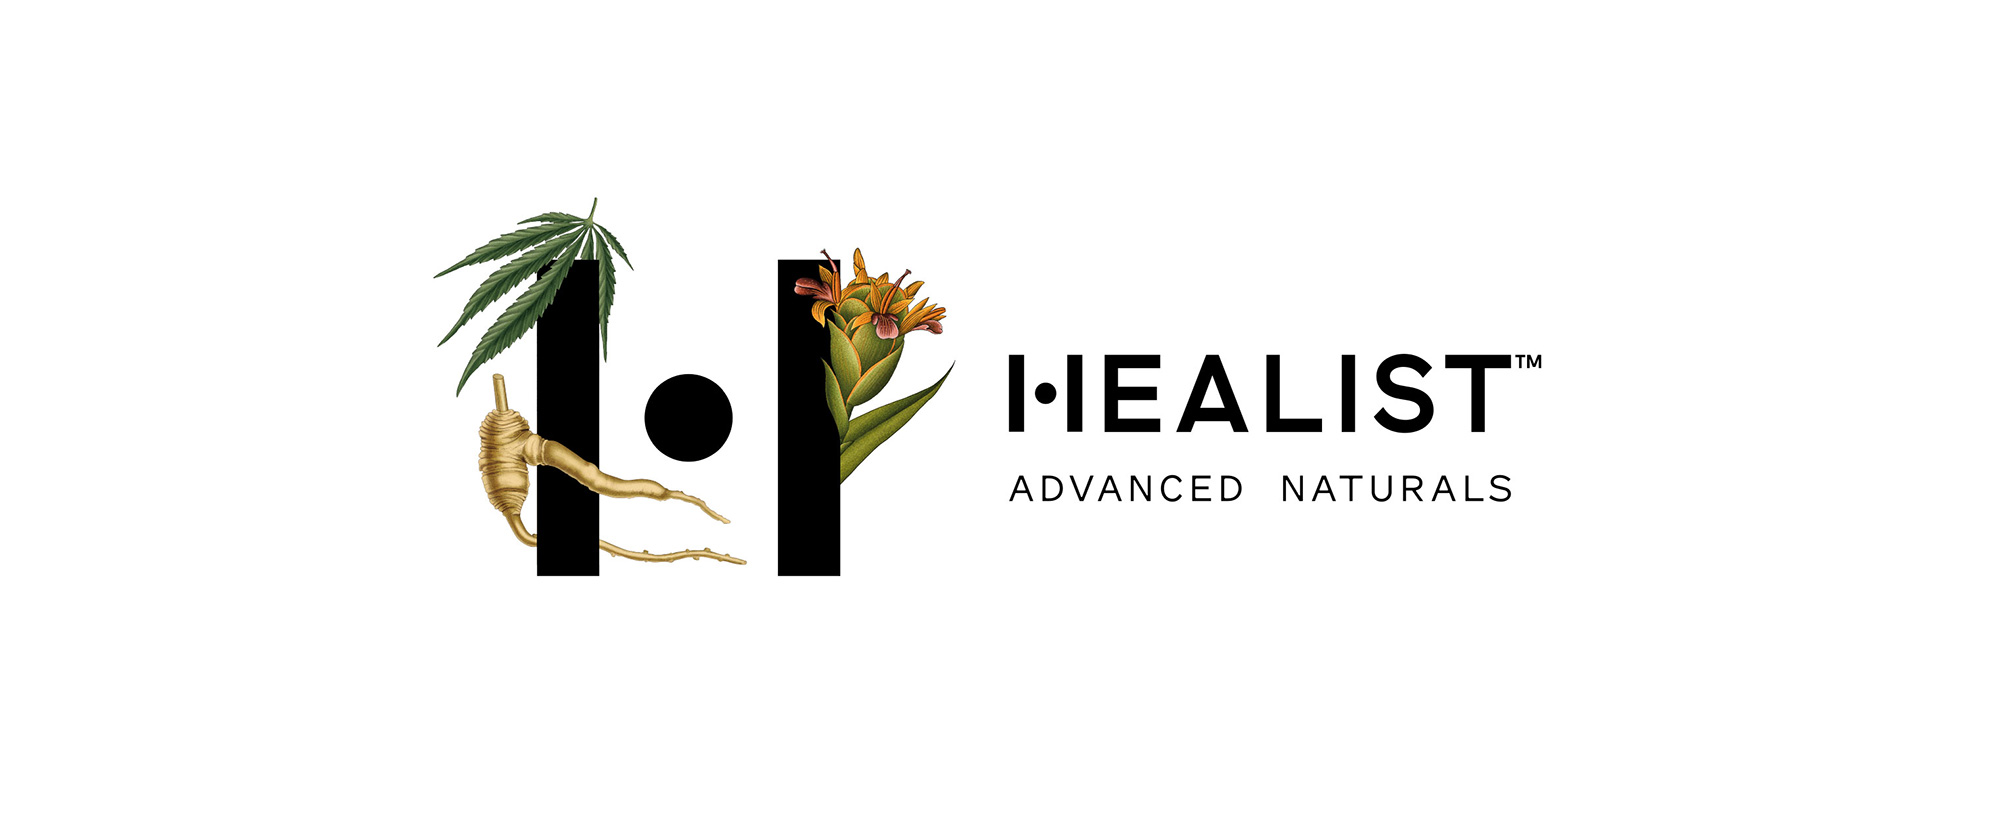 Evaluated: New Logo Design, Identity, and Product Packaging for Healist Naturals by Robotic Food